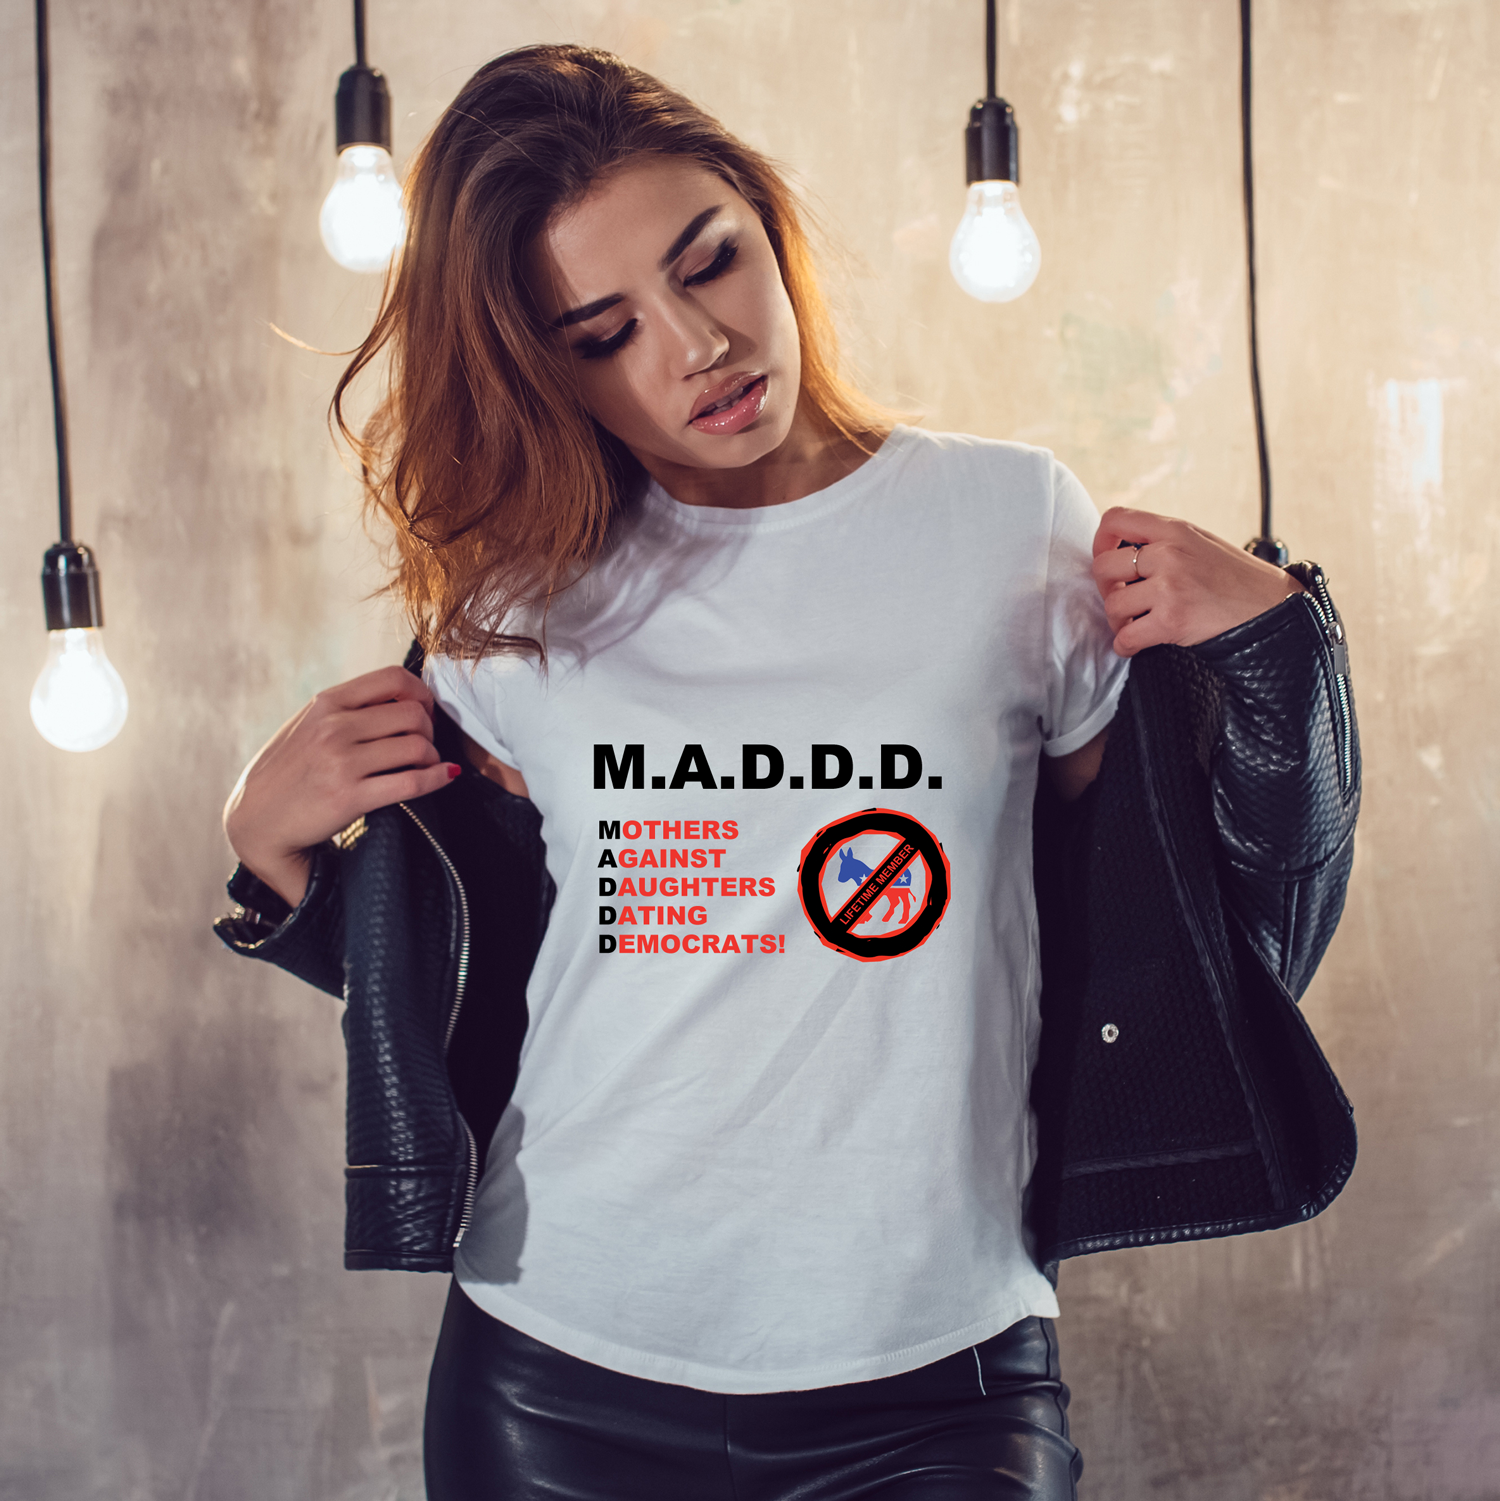 M.A.D.D.D. Mothers Against Daughters Dating Democrats Women's T-Shirt (MADE IN THE USA)